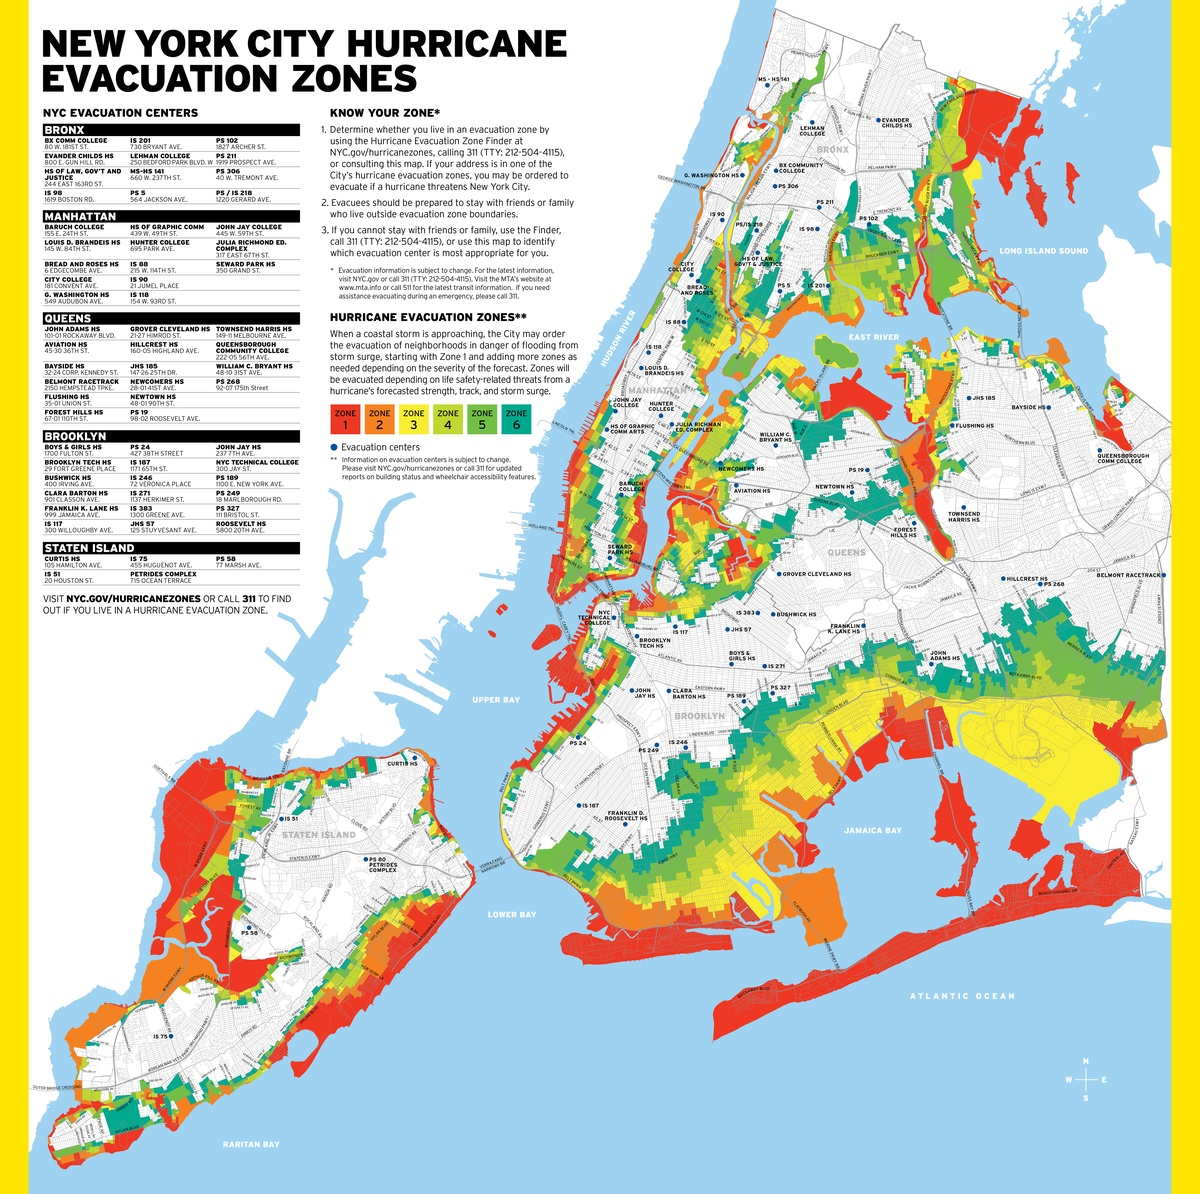 Project image 1 for Hurricane Map, New York City Office of Emergency Management